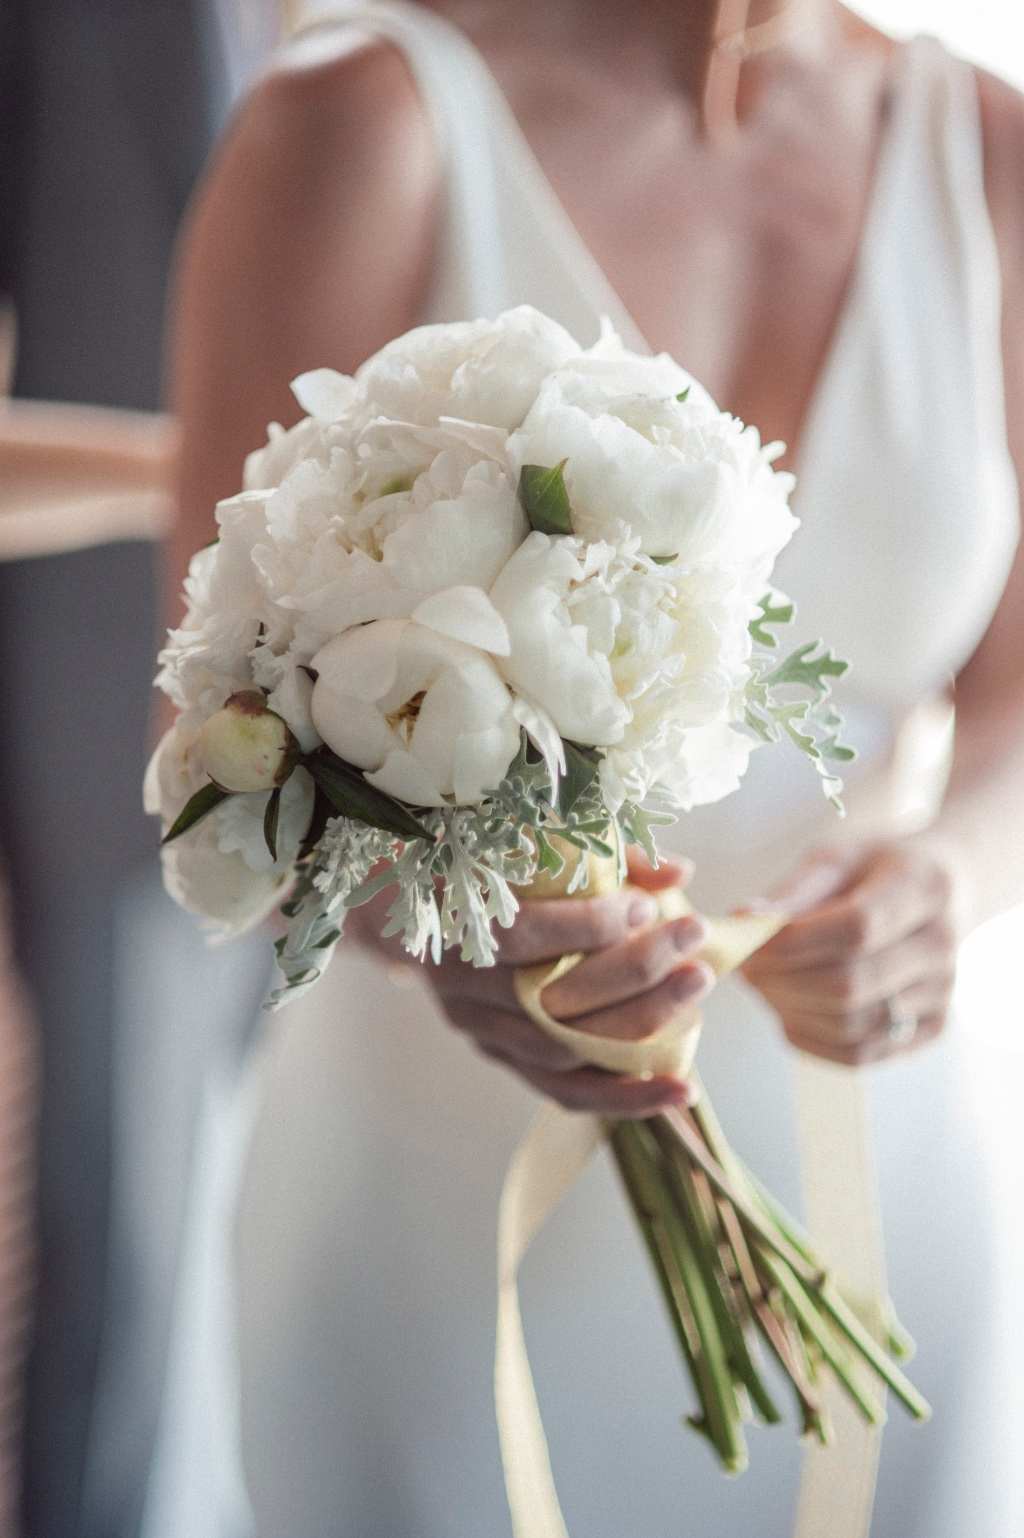 Chic White and gold floral bouquet for a beach wedding in Greece